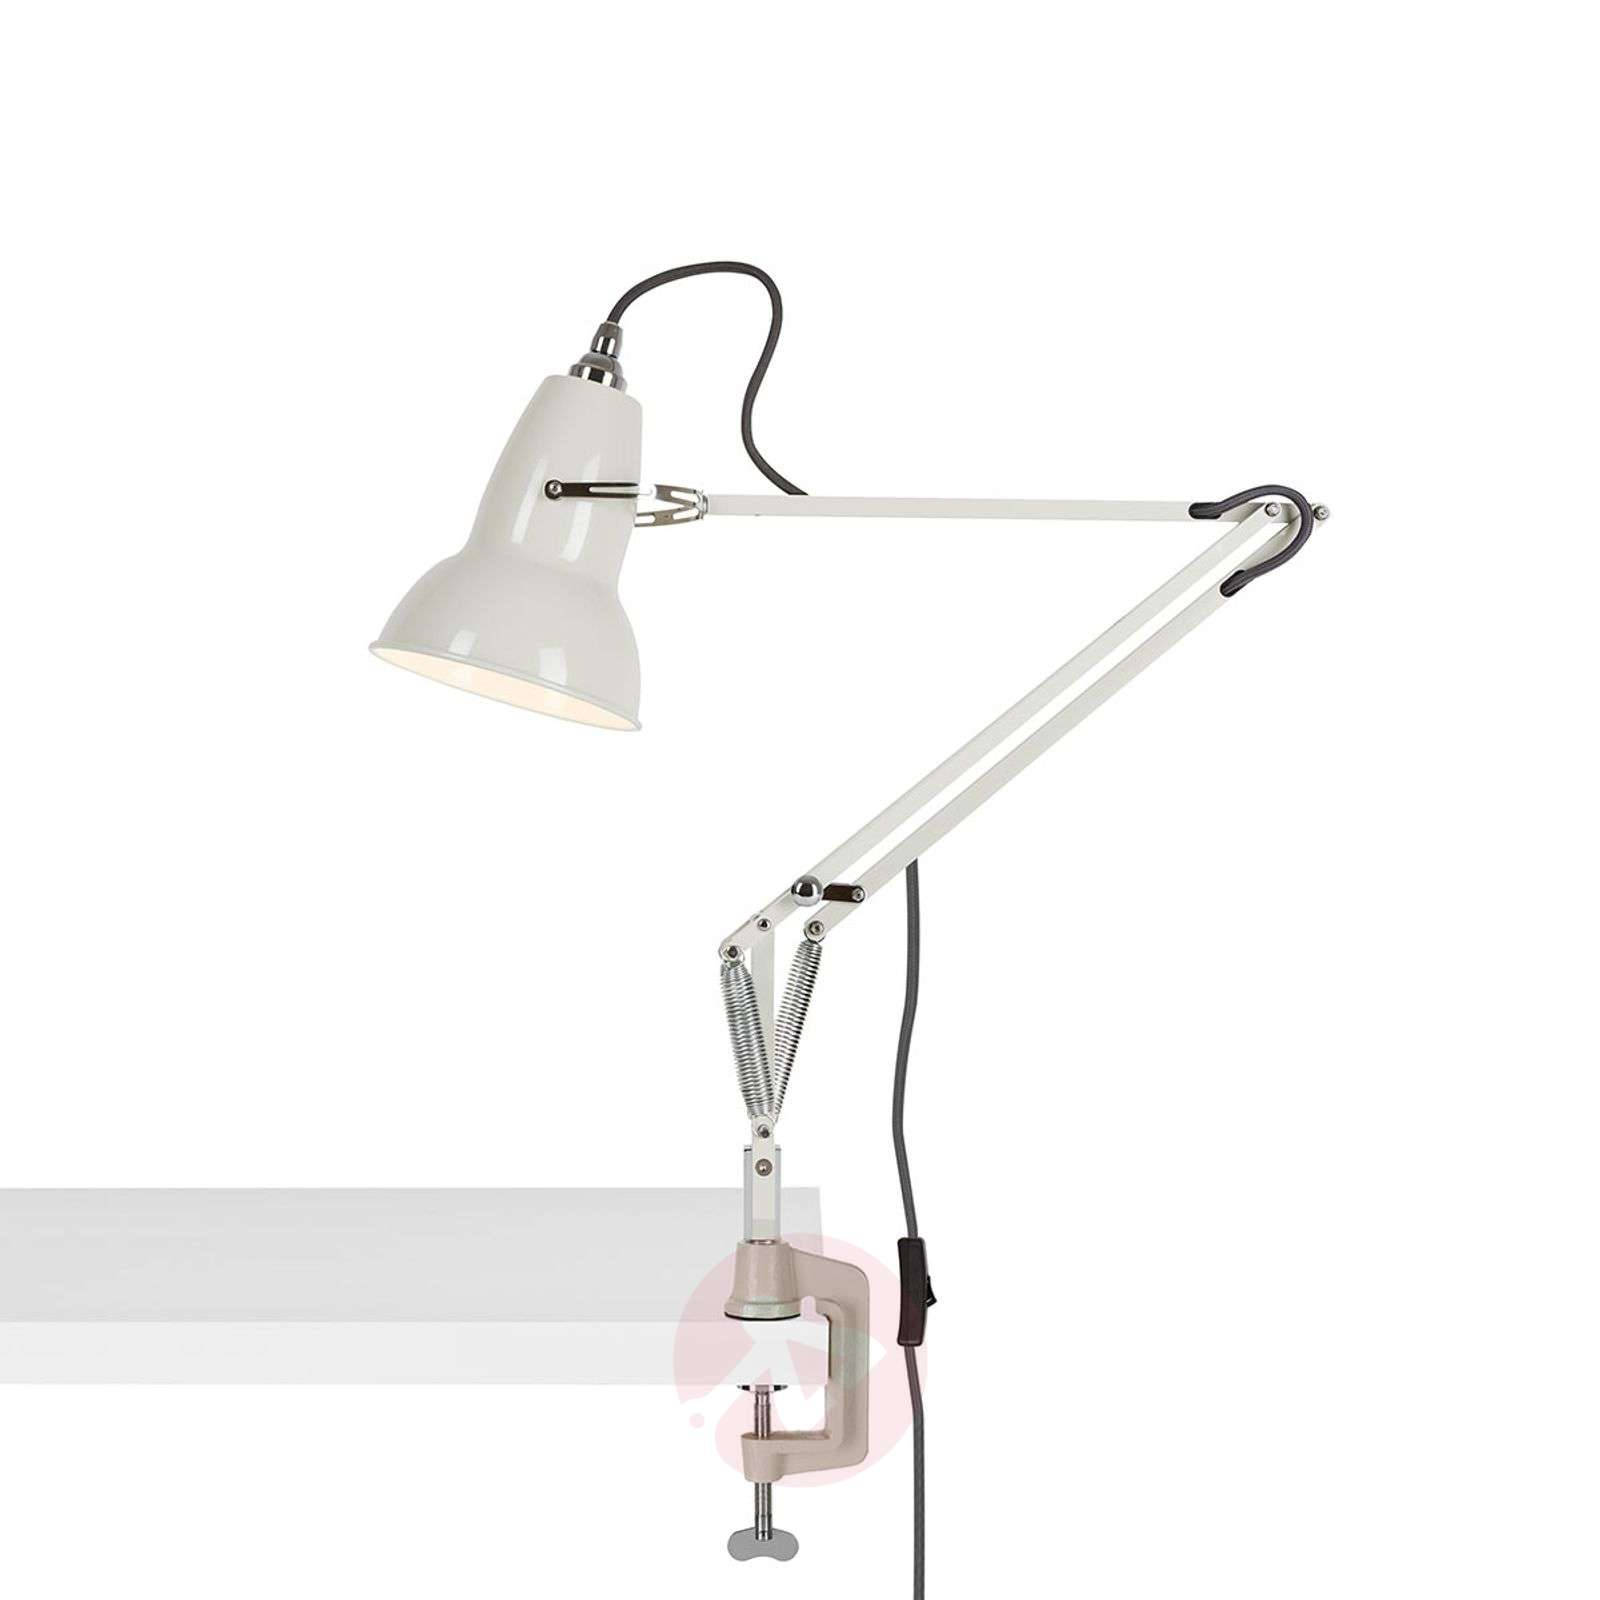 Anglepoise Original 1227 Mini clip-on table lamp-1073031X-01